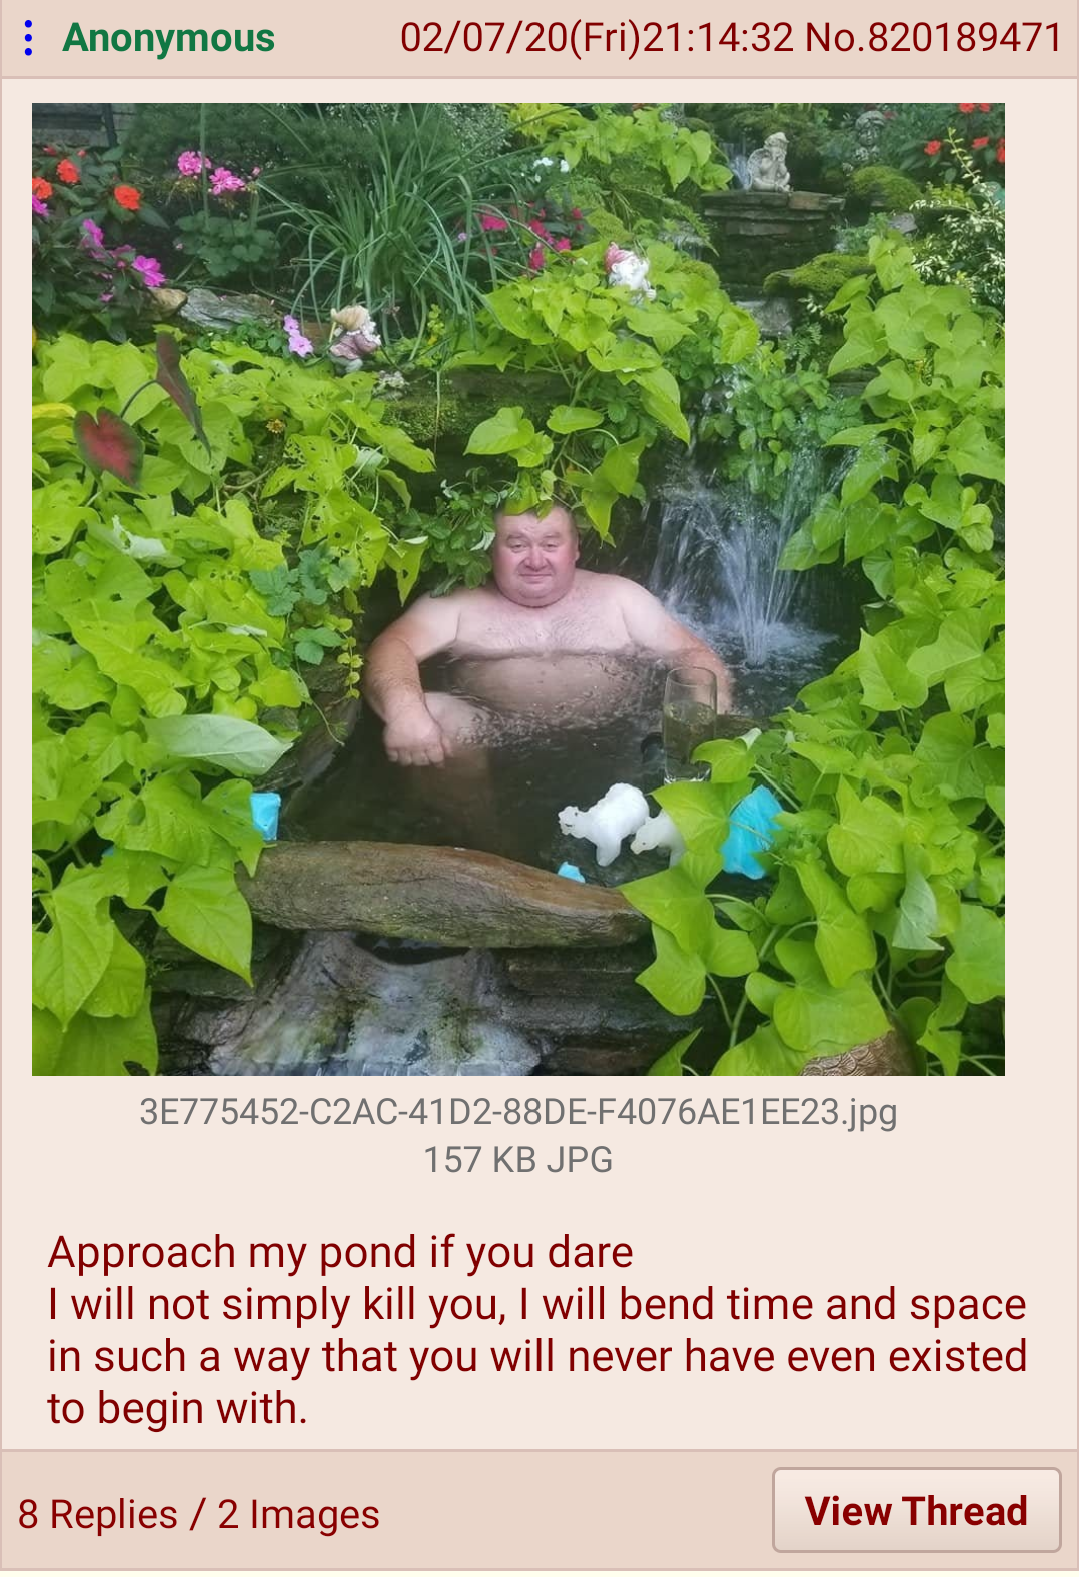 But it's such a nice pond :(